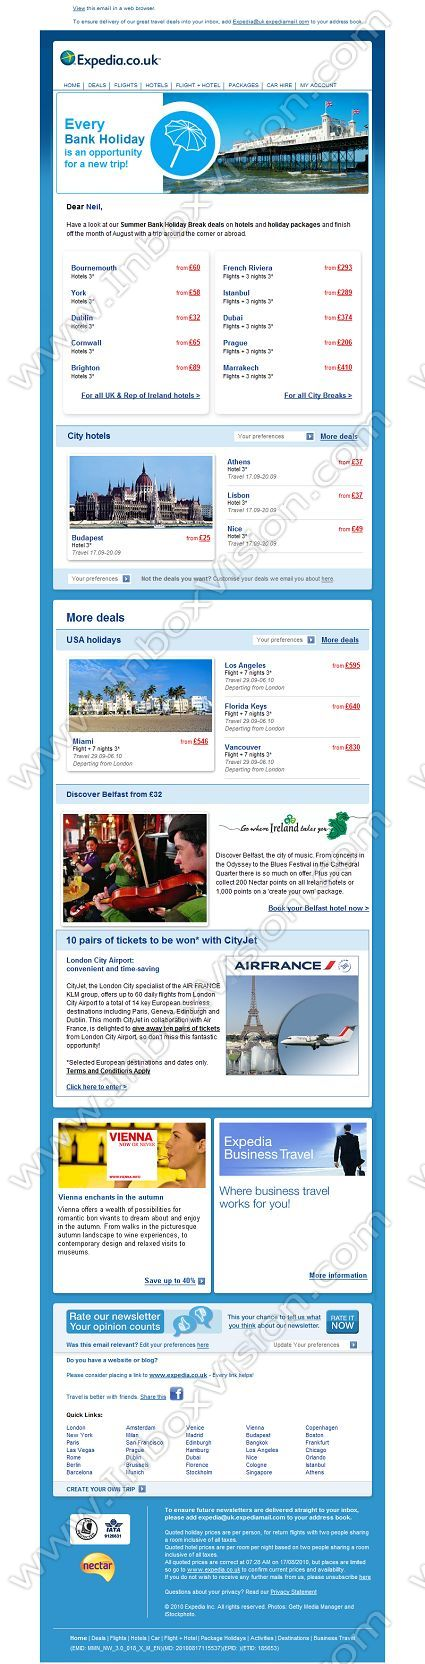 Company Expediauk Subject Our Top Bank holiday deals - holiday newsletter template